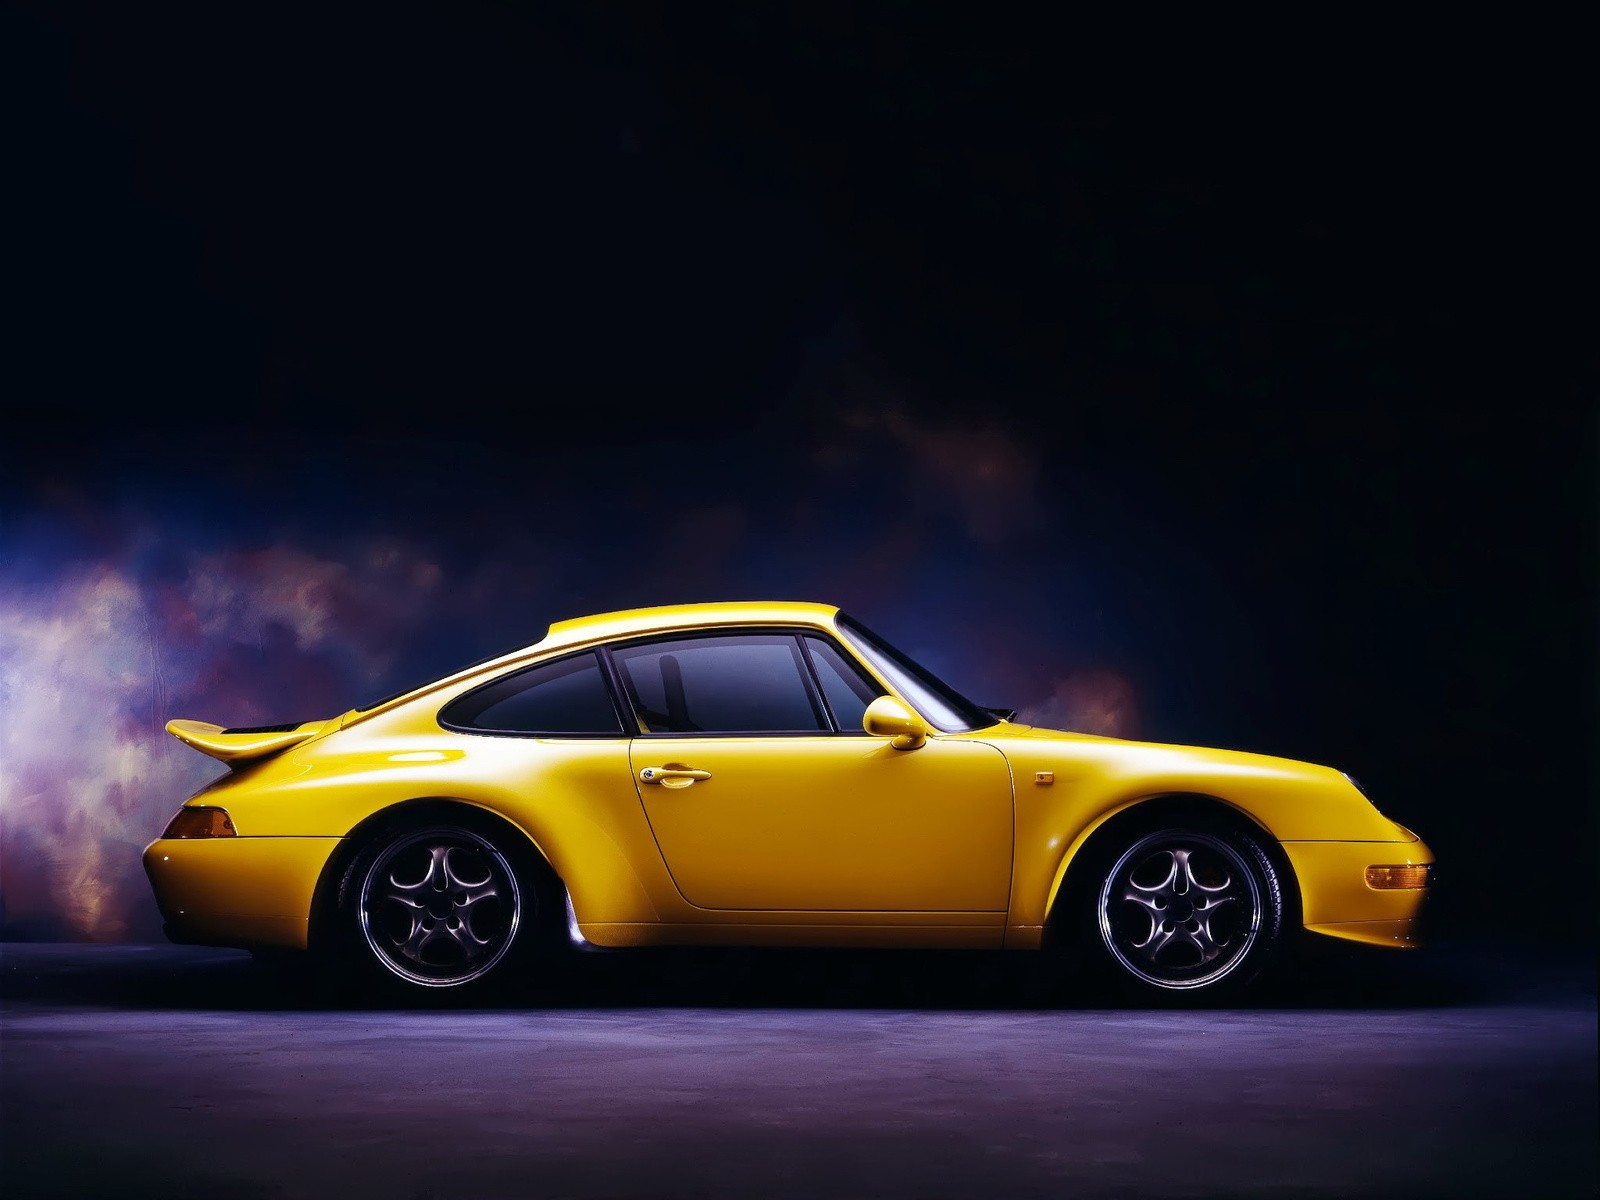 Cars Com Reviews >> PORSCHE 911 Carrera RS (993) - 1995, 1996 - autoevolution